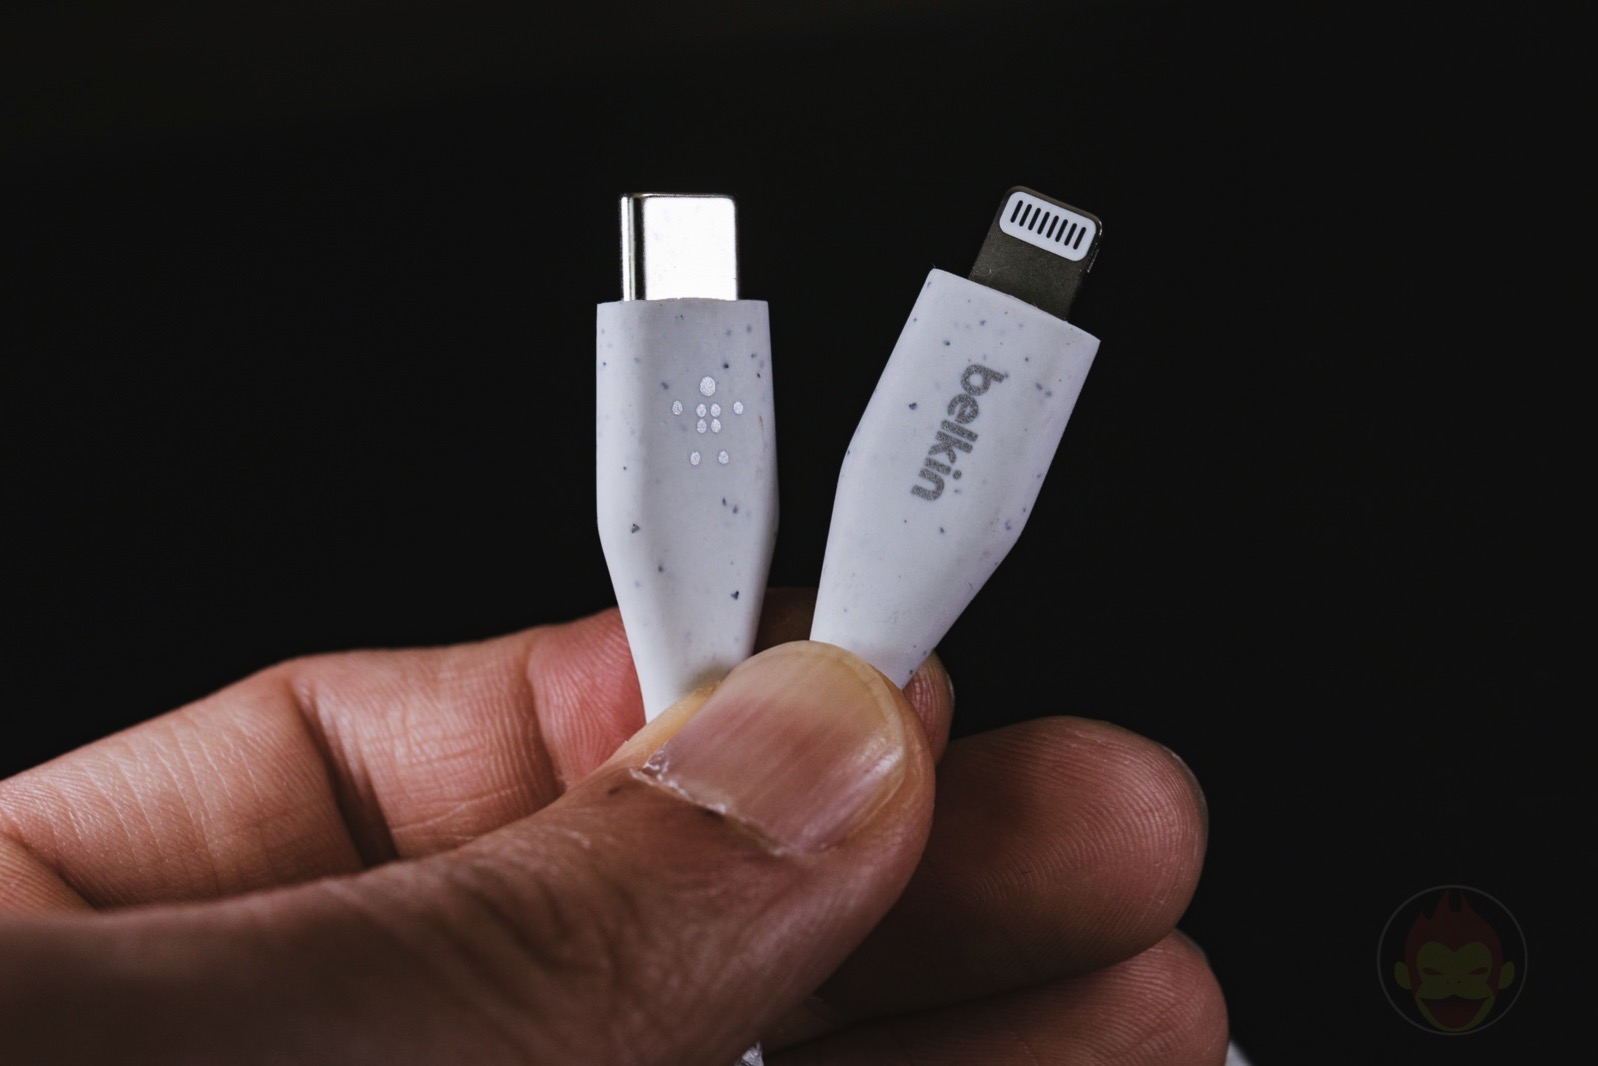 USBC-Chargers-and-Cables-I-Take-Everyday-08.jpg